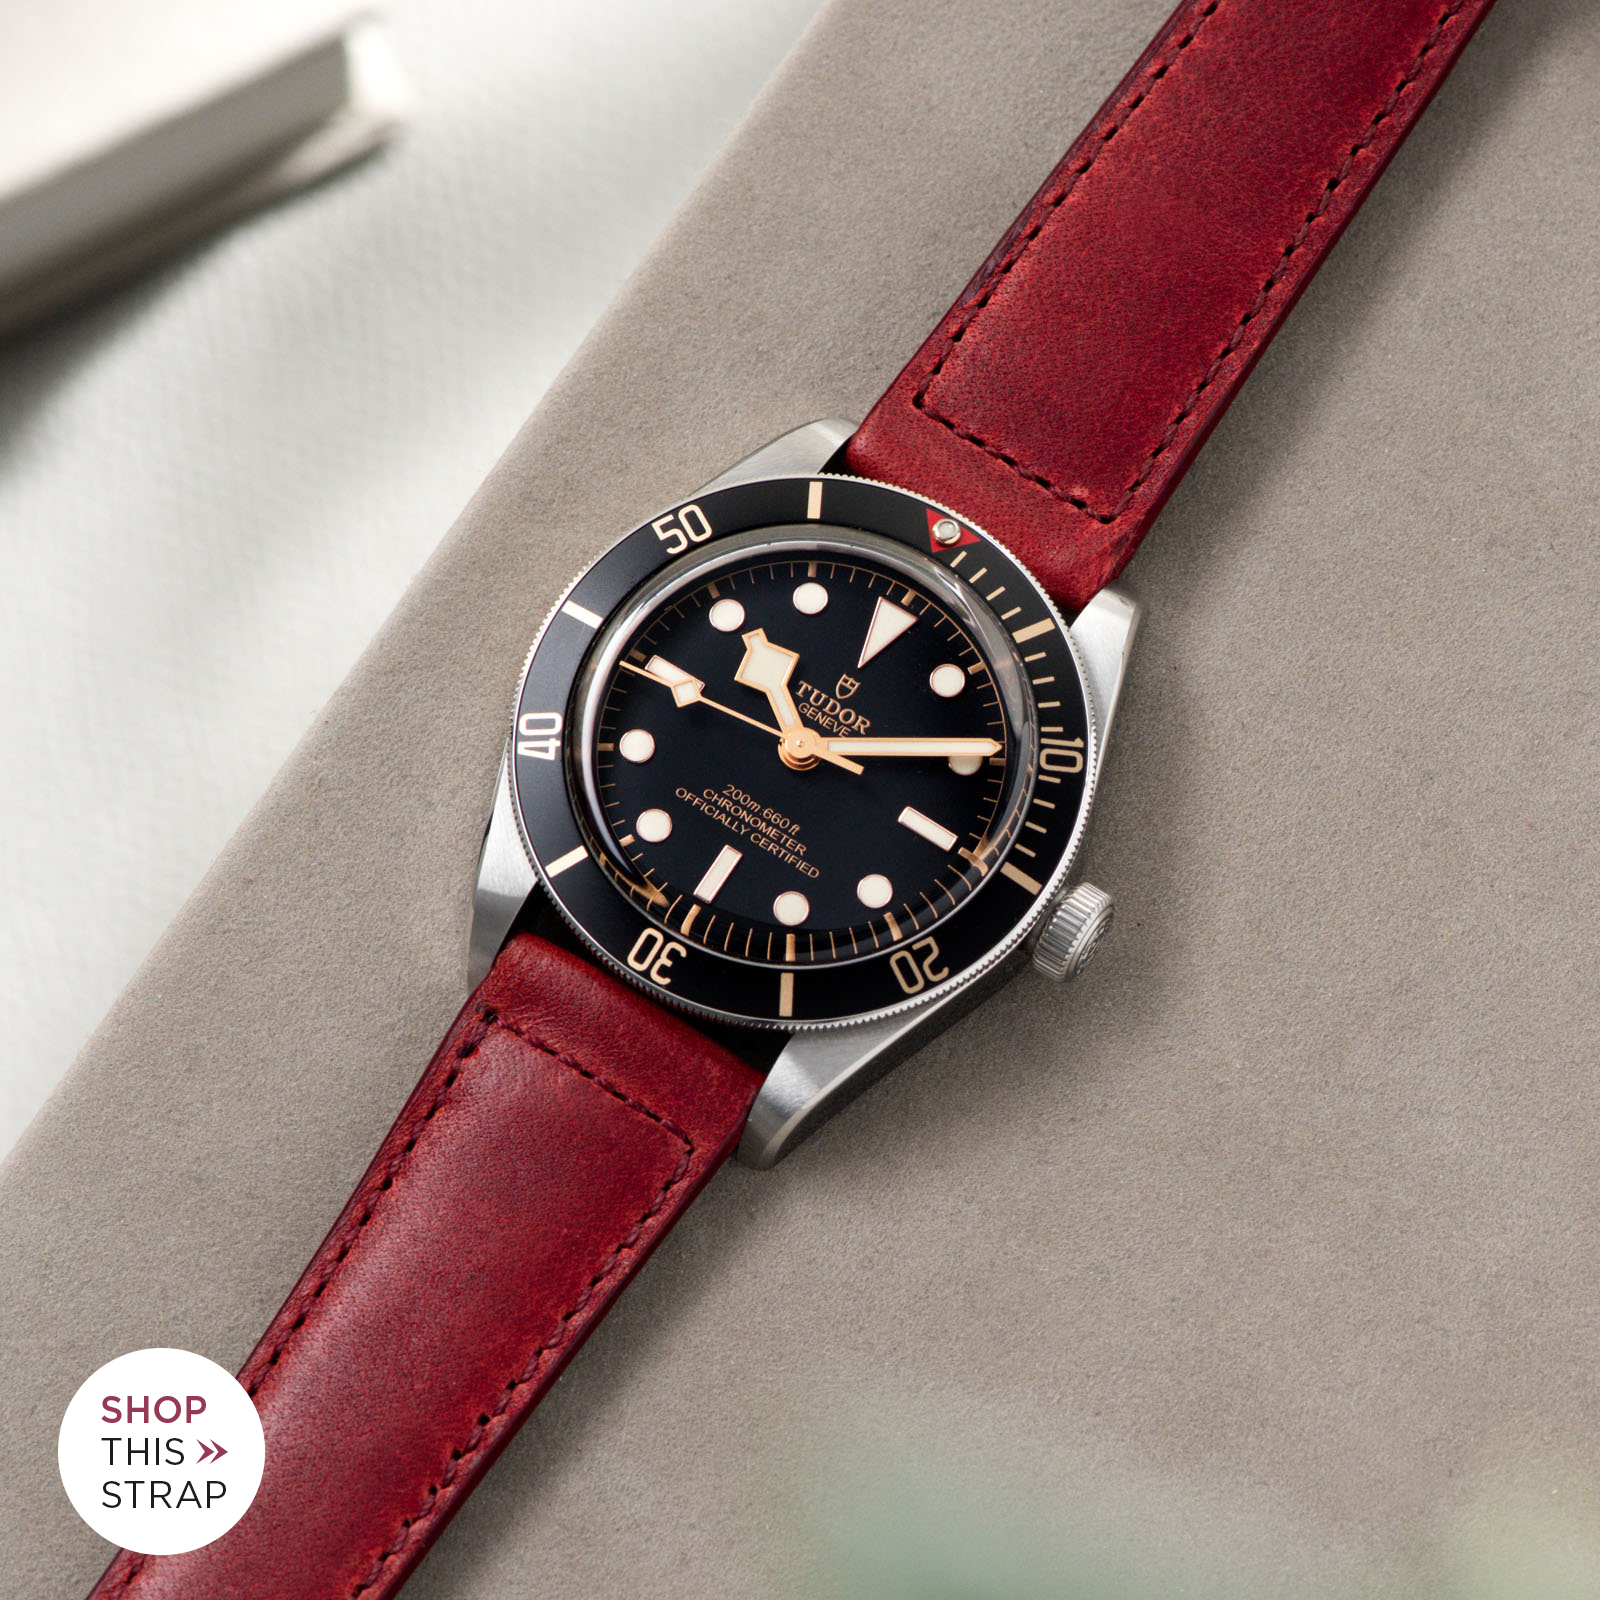 Bulang and Sons_Strap Guide_Tudor Black Bay 58_Chimney Red Leather Watch Strap